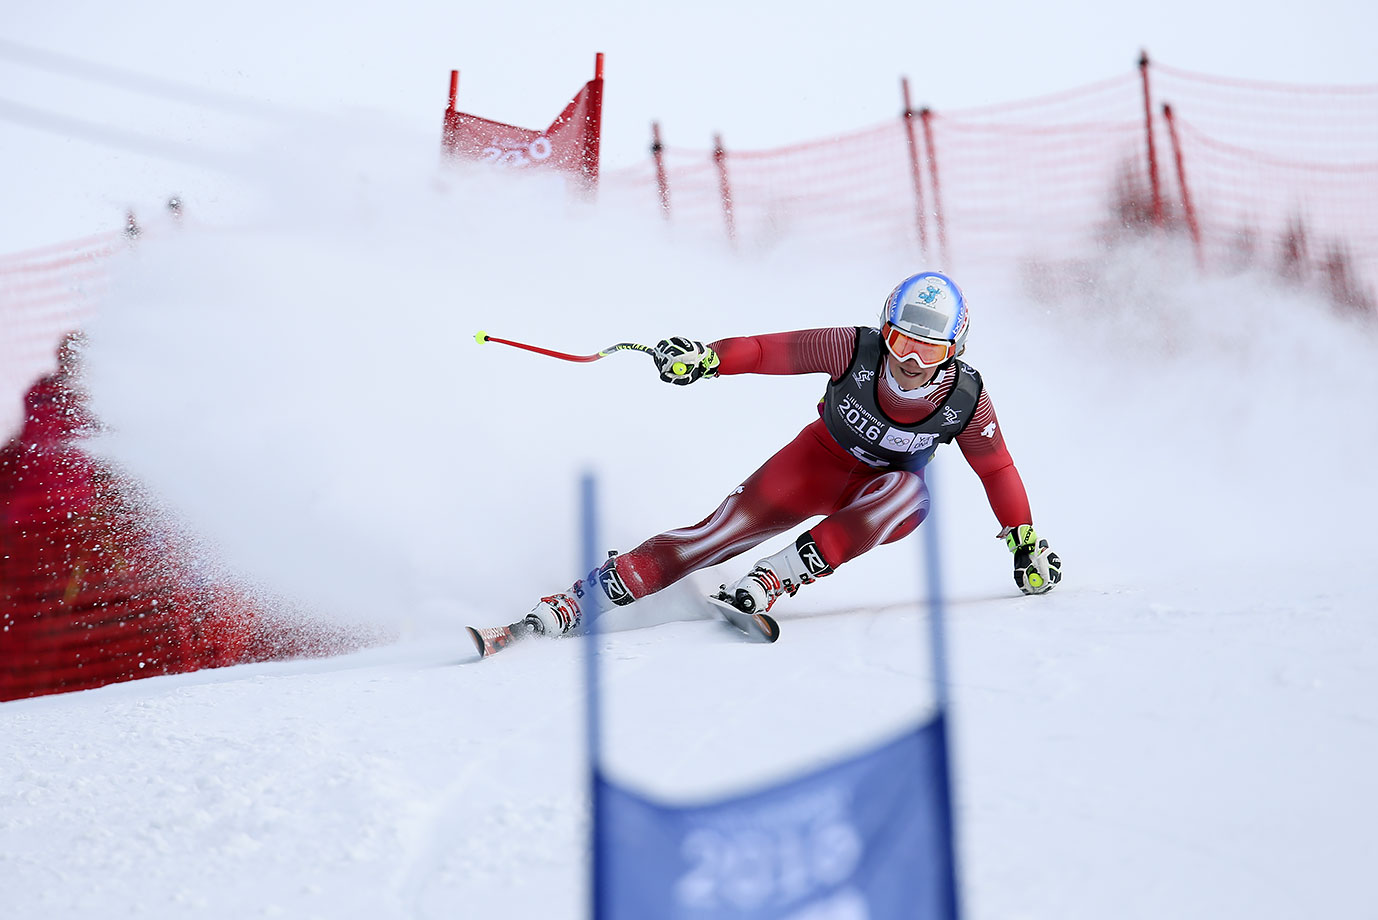 Melanie Meillard (SUI) competes in Alpine Skiing Ladies' Super-G at the Hafjell Olympic Slope on Feb. 13, 2016 during the Winter Youth Olympic Games in Lillehammer, Norway.